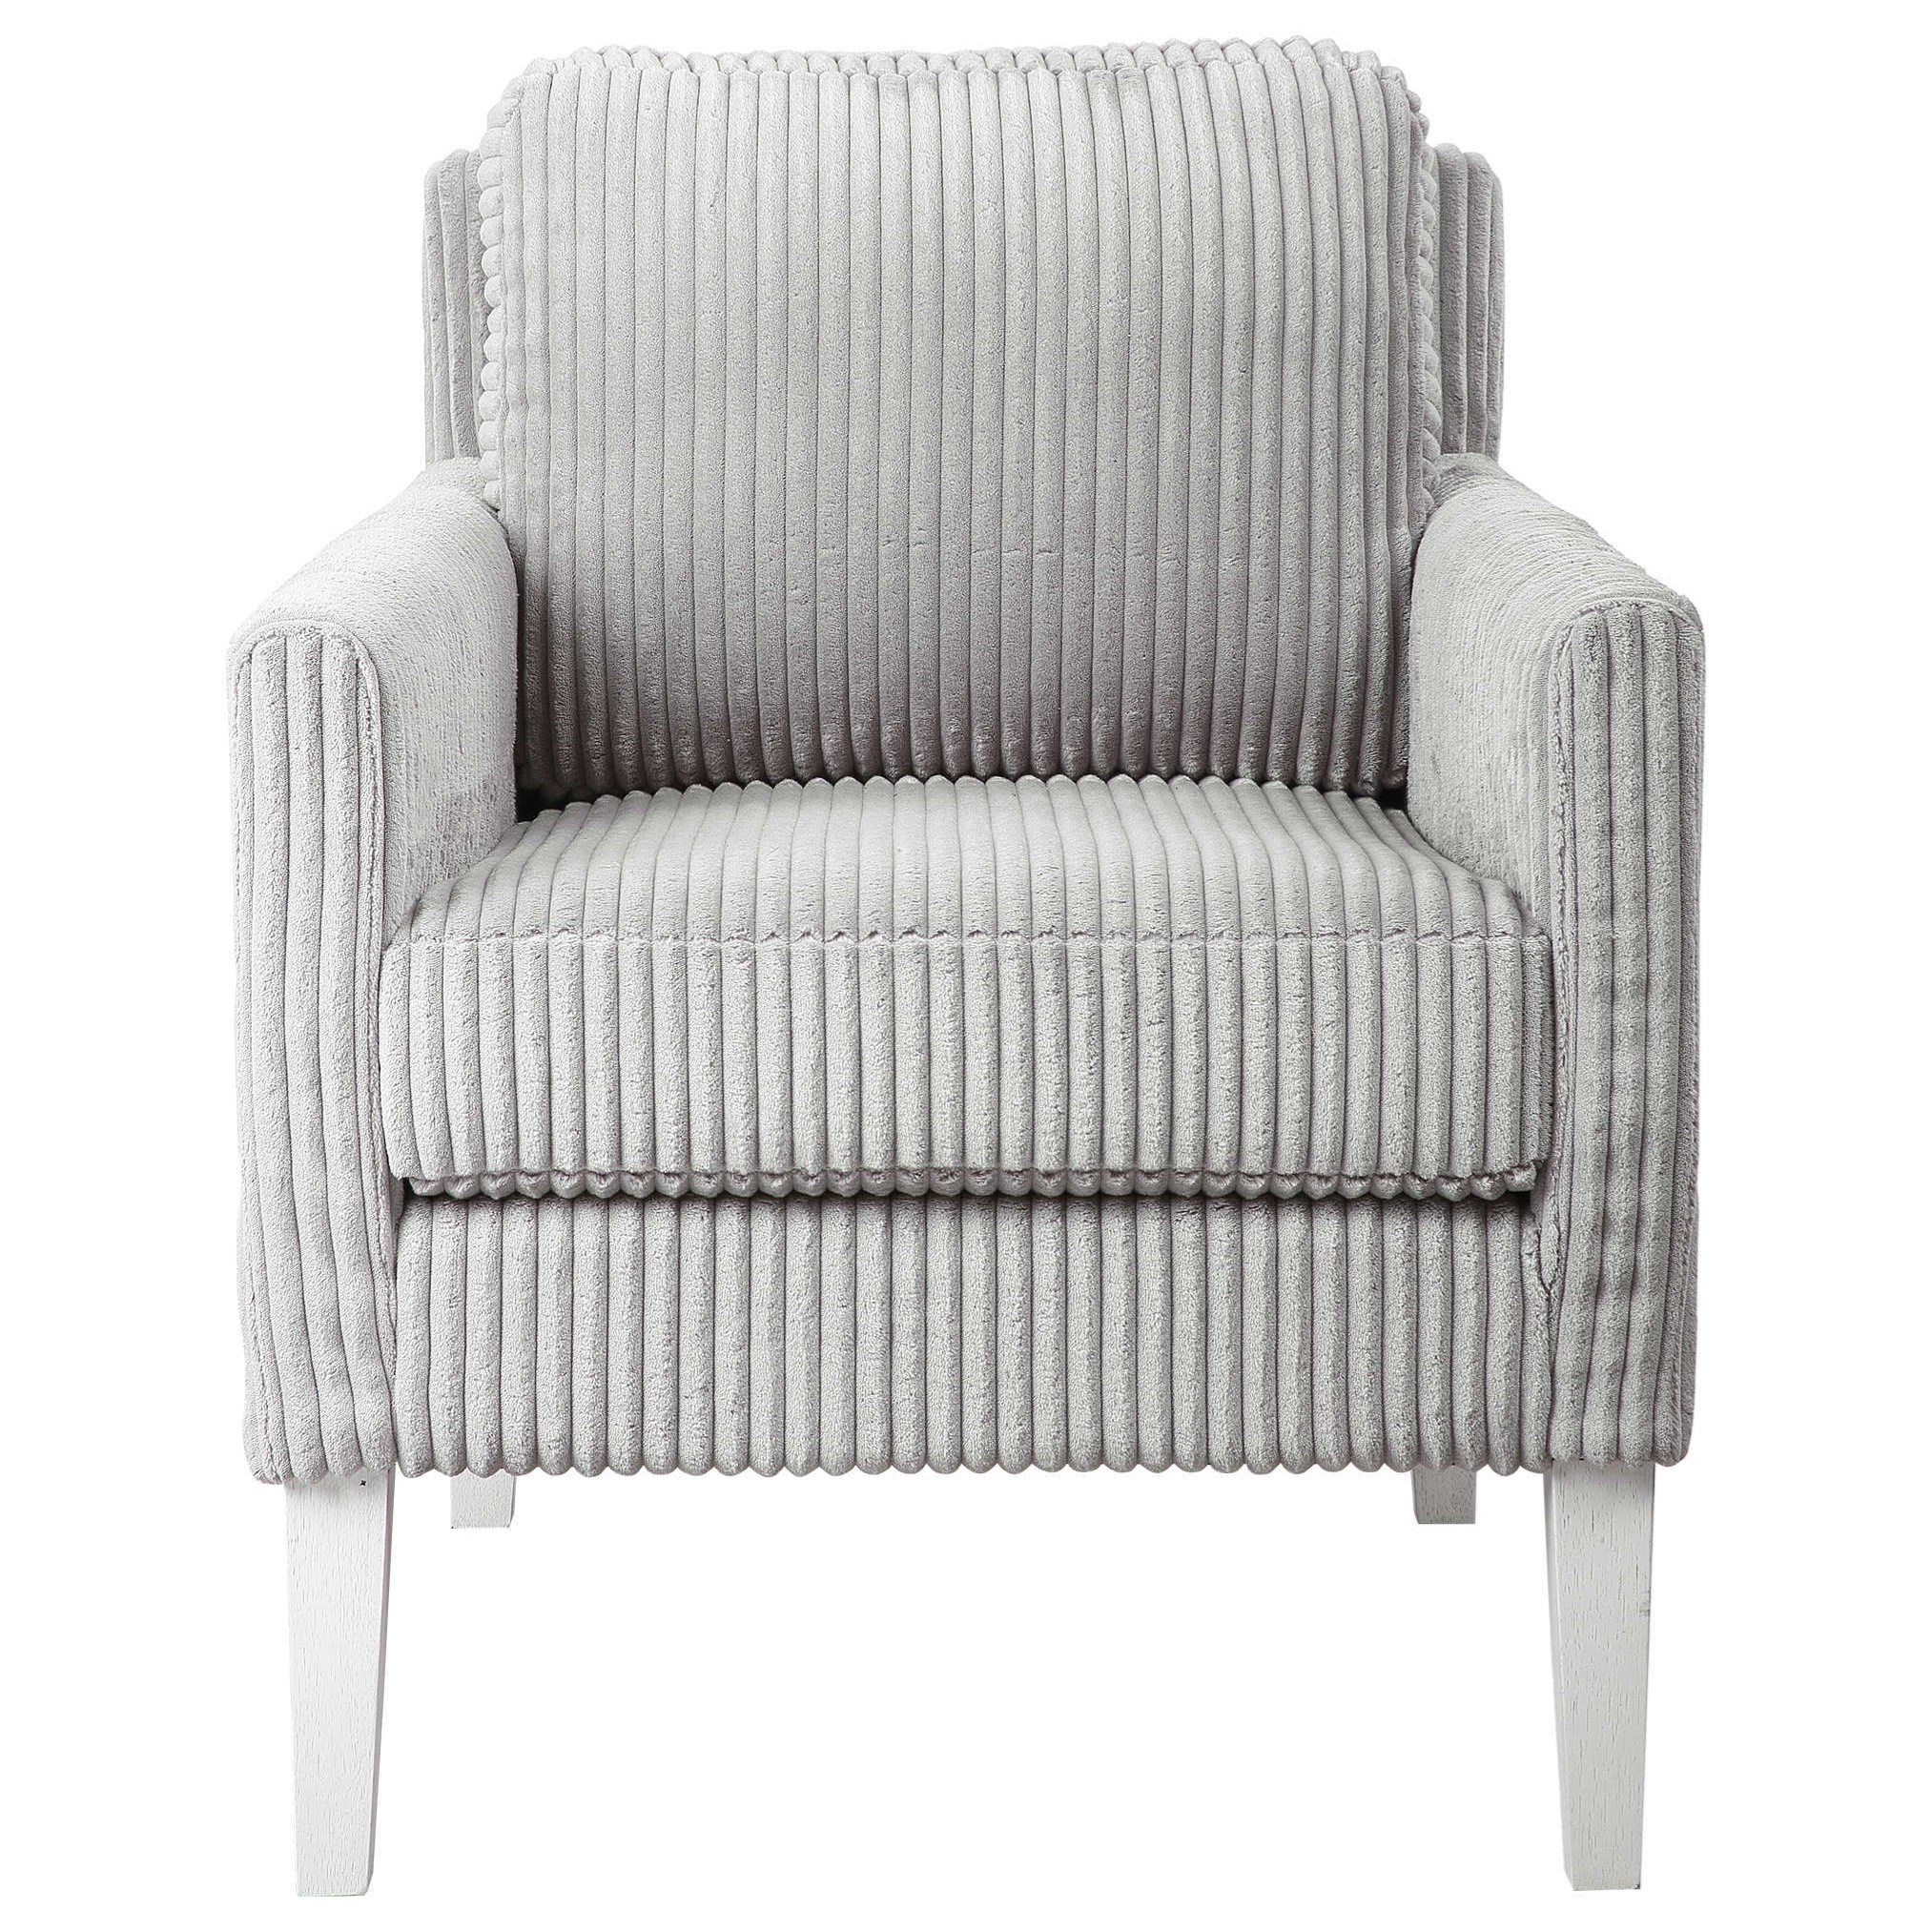 Accent Furniture - Accent Chairs Cavalla Gray Accent Chair by Uttermost at O'Dunk & O'Bright Furniture